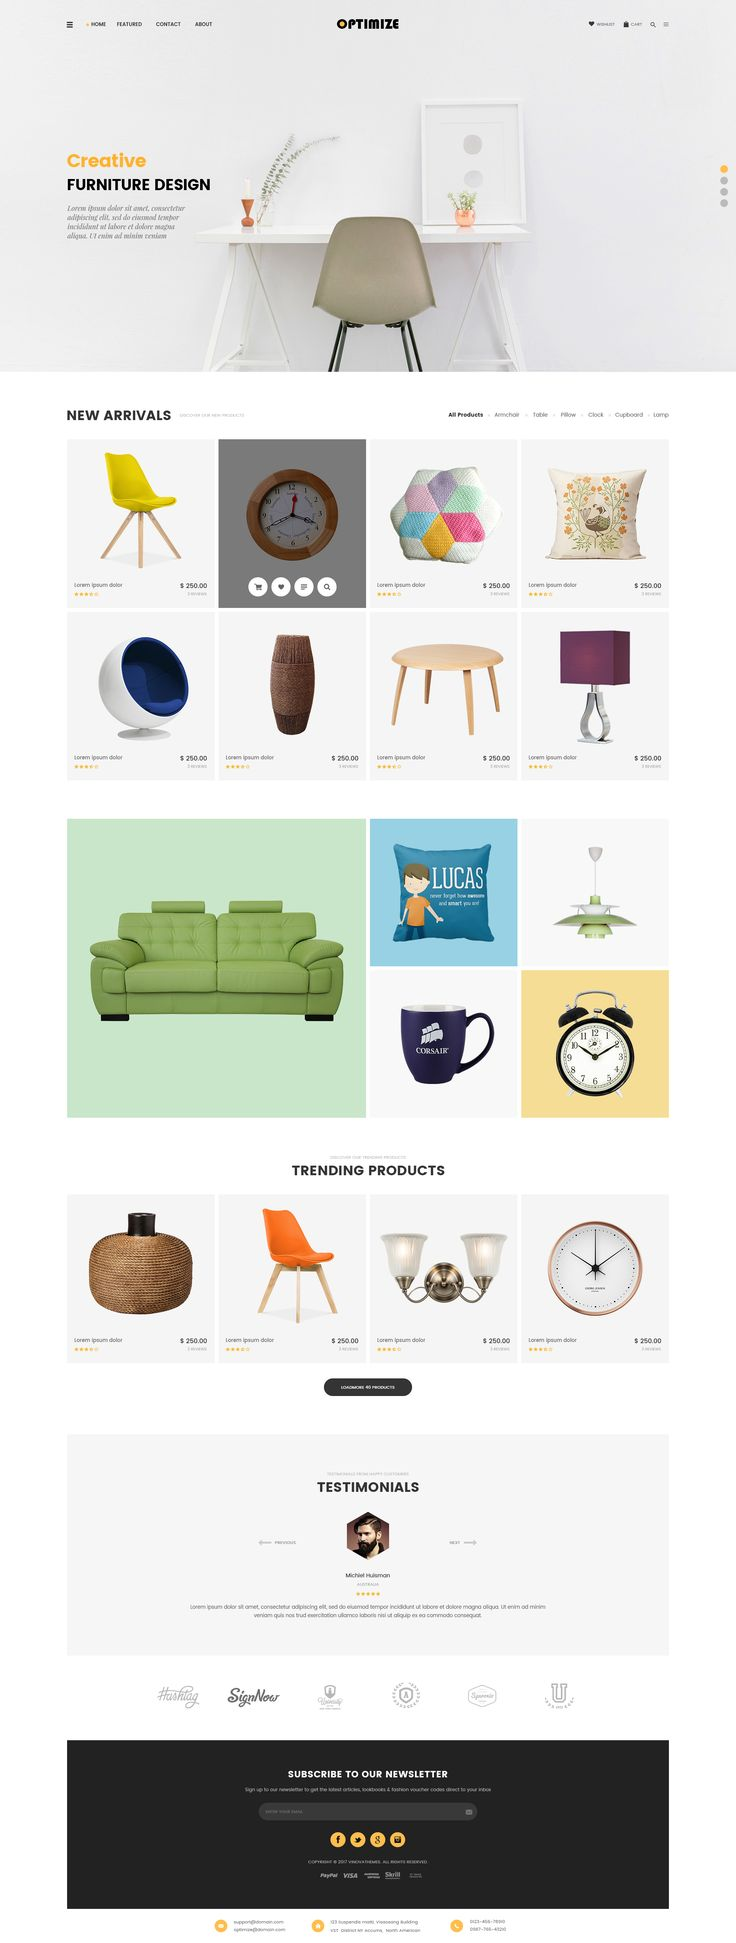 """Check out my @Behance project: """"Optimize - Minimalist Ecommerce Template"""" https://www.behance.net/gallery/53437899/Optimize-Minimalist-Ecommerce-Template"""